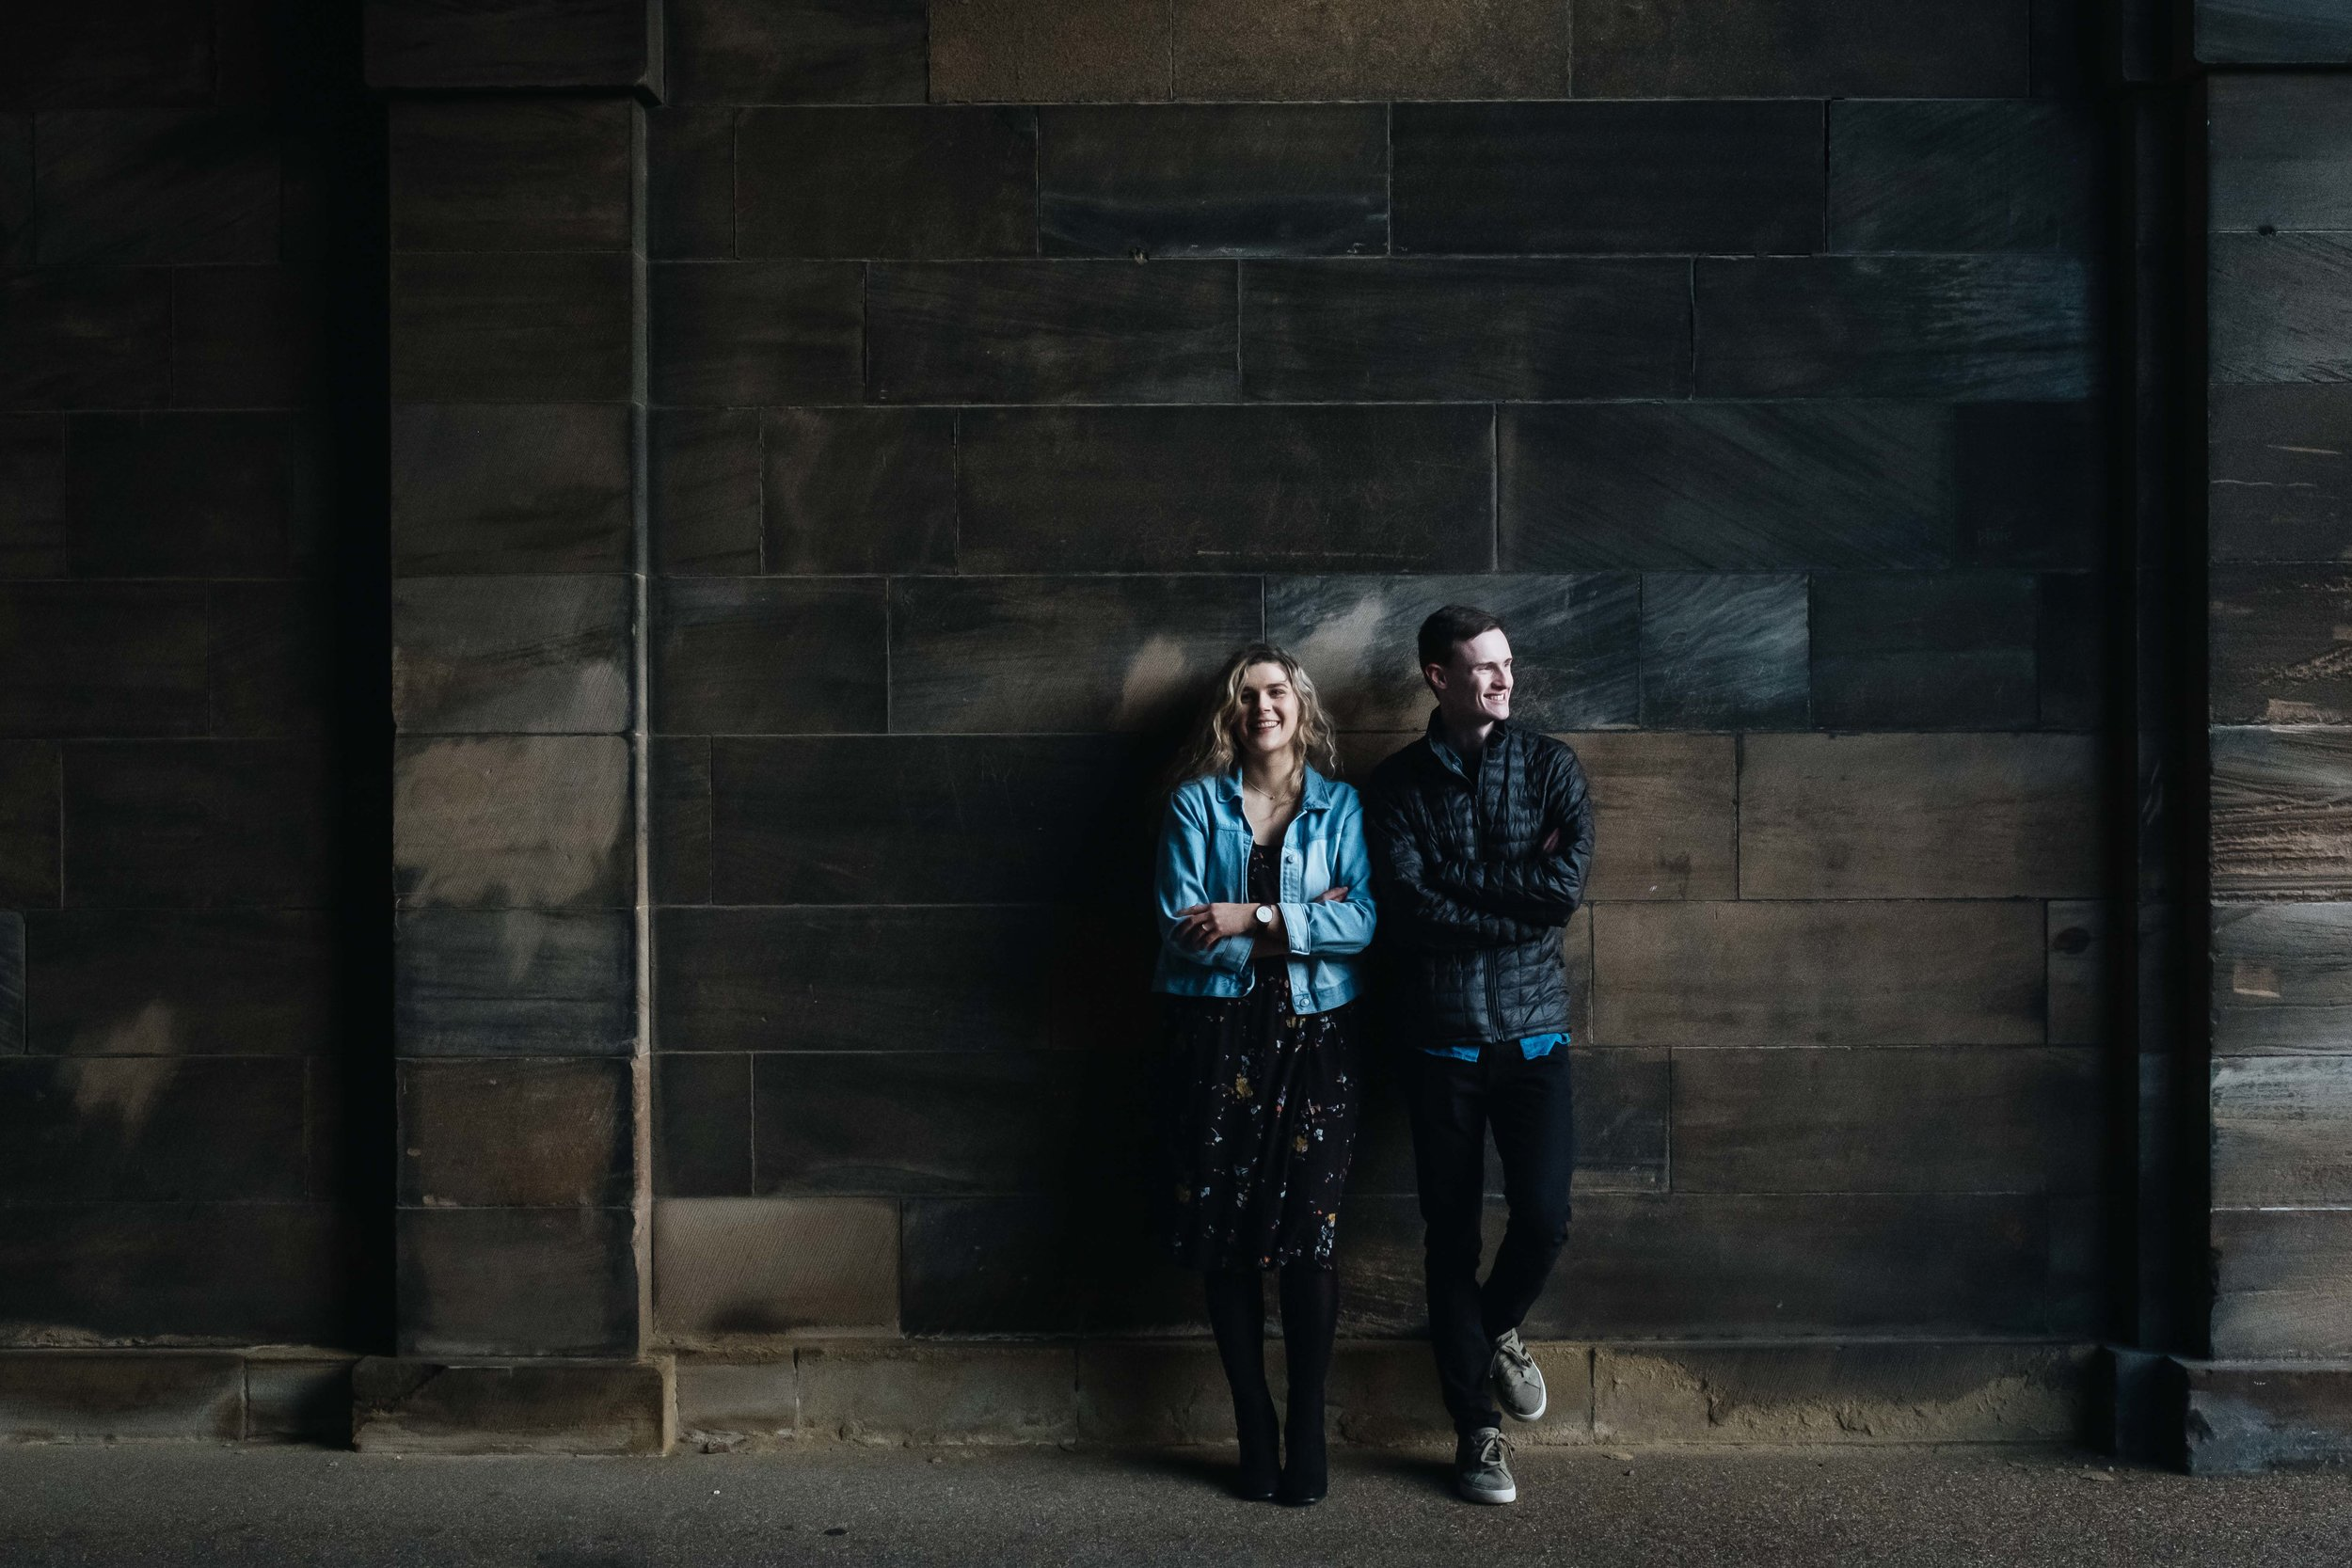 An engaged couple lean against a wall at Edinburgh University, smiling.